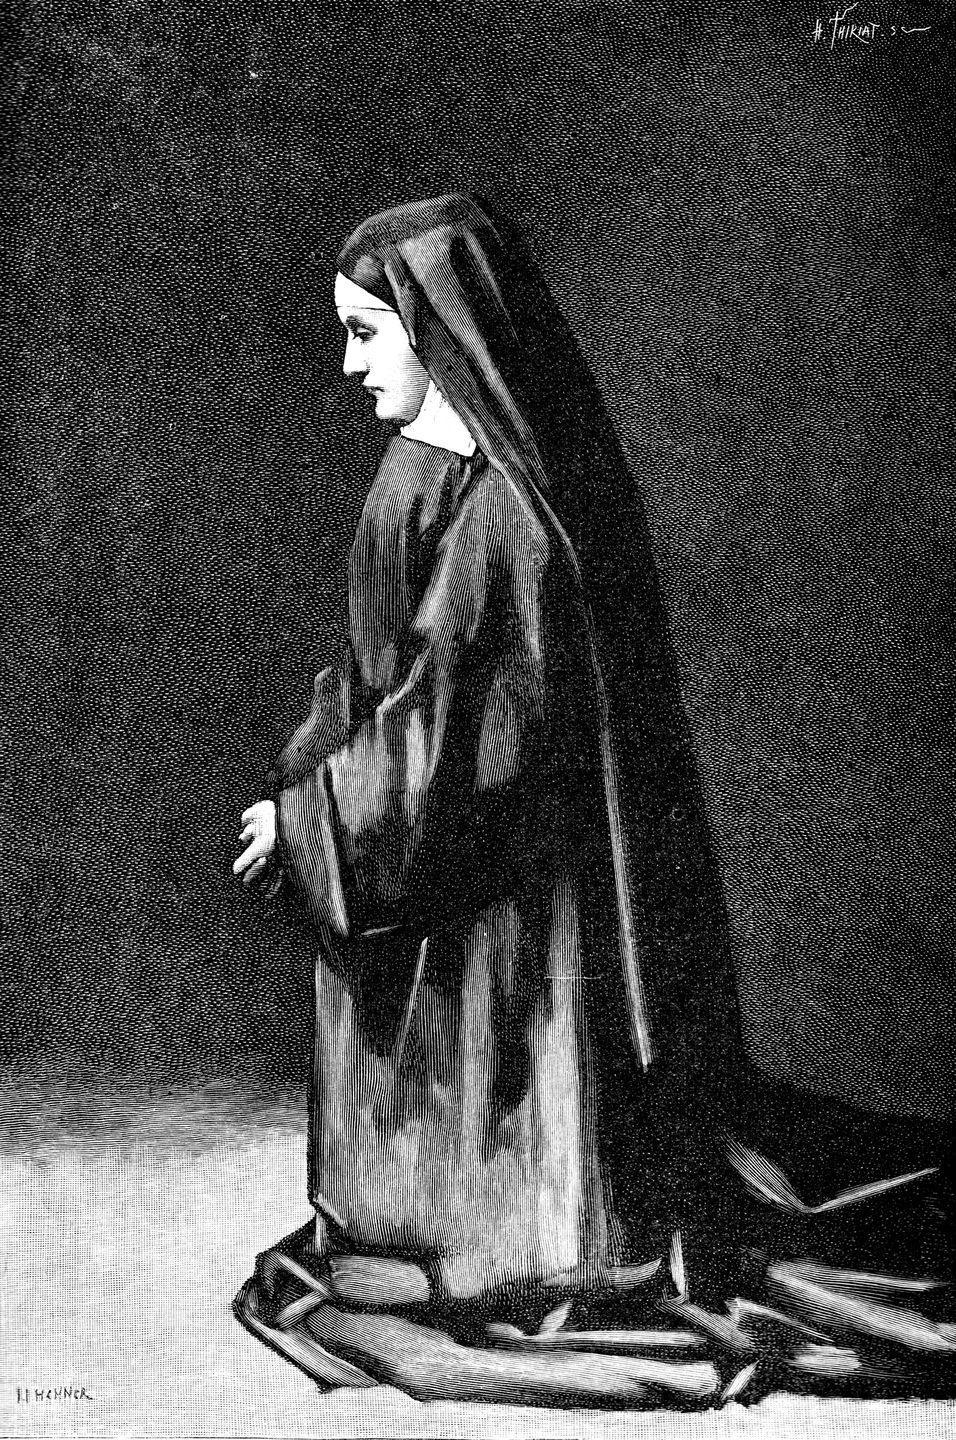 """<p><strong><em>In what state is it illegal to dress up as a nun or a priest on Halloween?</em></strong></p><p><strong>Answer:</strong> Alabama. According to the law Section 13A-14-4:<br><em>""""Fraudulently pretending to be clergyman.</em><br><em>Whoever, being in a public place, fraudulently pretends by garb or outward array to be a minister of any religion, or nun, priest, rabbi or other member of the clergy, is guilty of a misdemeanor and, upon conviction, shall be punished by a fine not exceeding $500.00 or confinement in the county jail for not more than one year, or by both such fine and imprisonment. (Acts 1965, 1st Ex. Sess., No. 273, p. 381; Code 1975, §13-4-99.)""""</em><br></p>"""